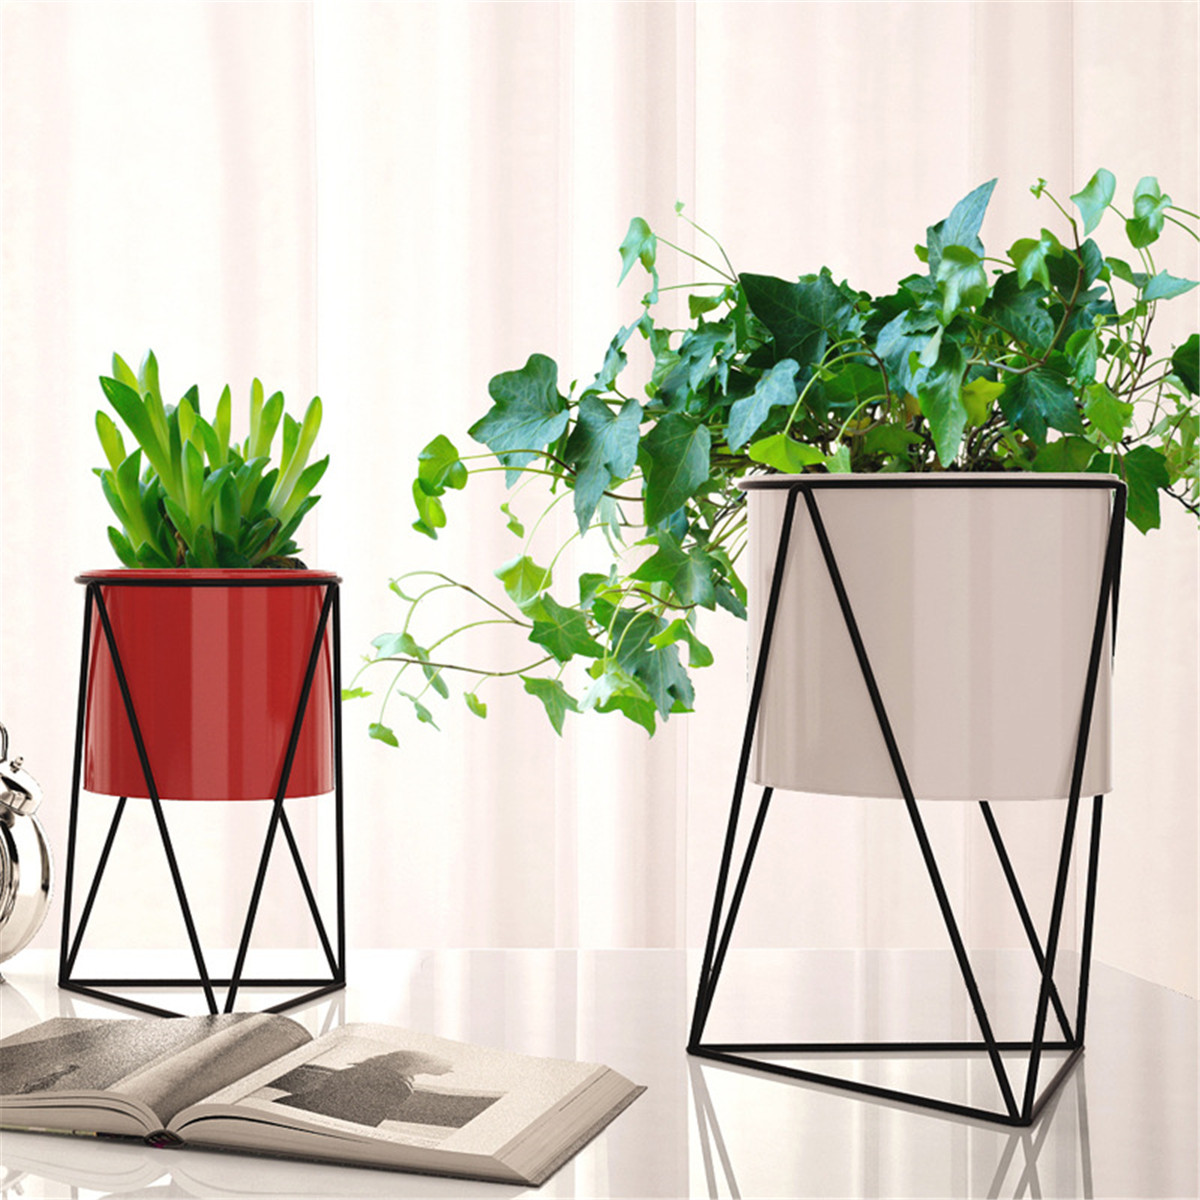 Geometric Metal Flower Pot Stand Chic Indoor Garden Plant Holder Display Planter